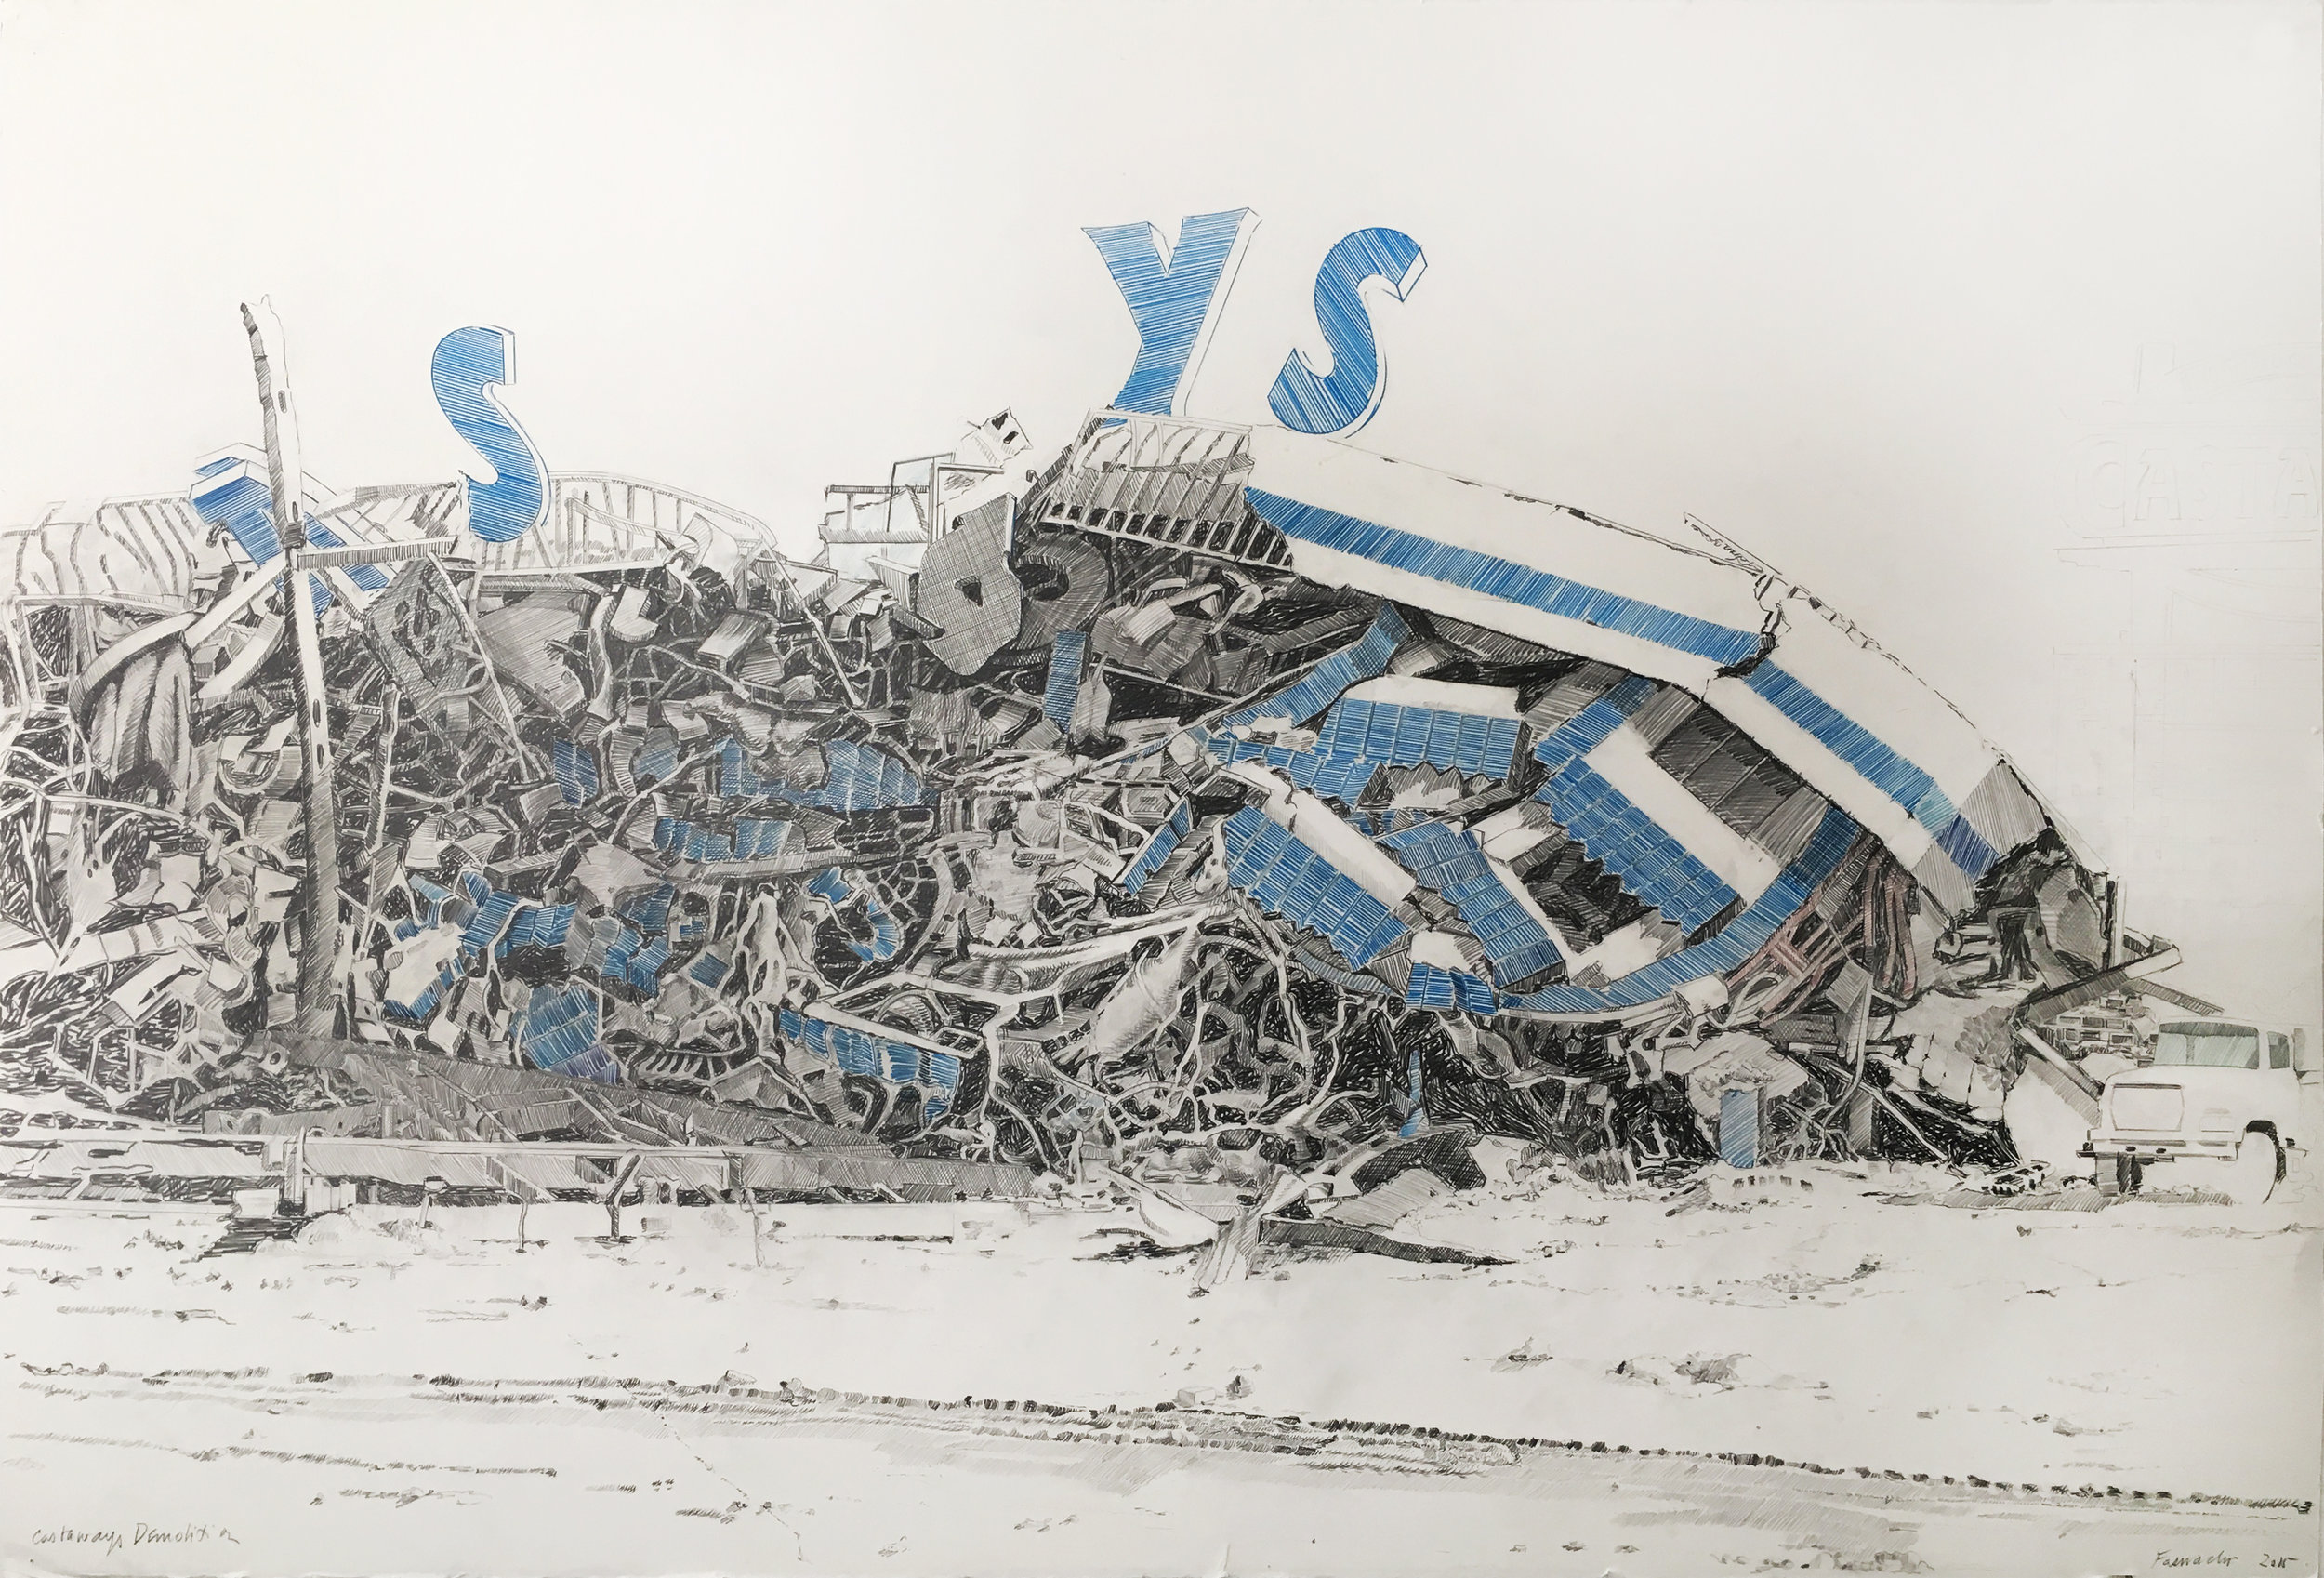 Castaways Demolition, 2015, Colored pencil and graphite on paper, 40 x 60 inches